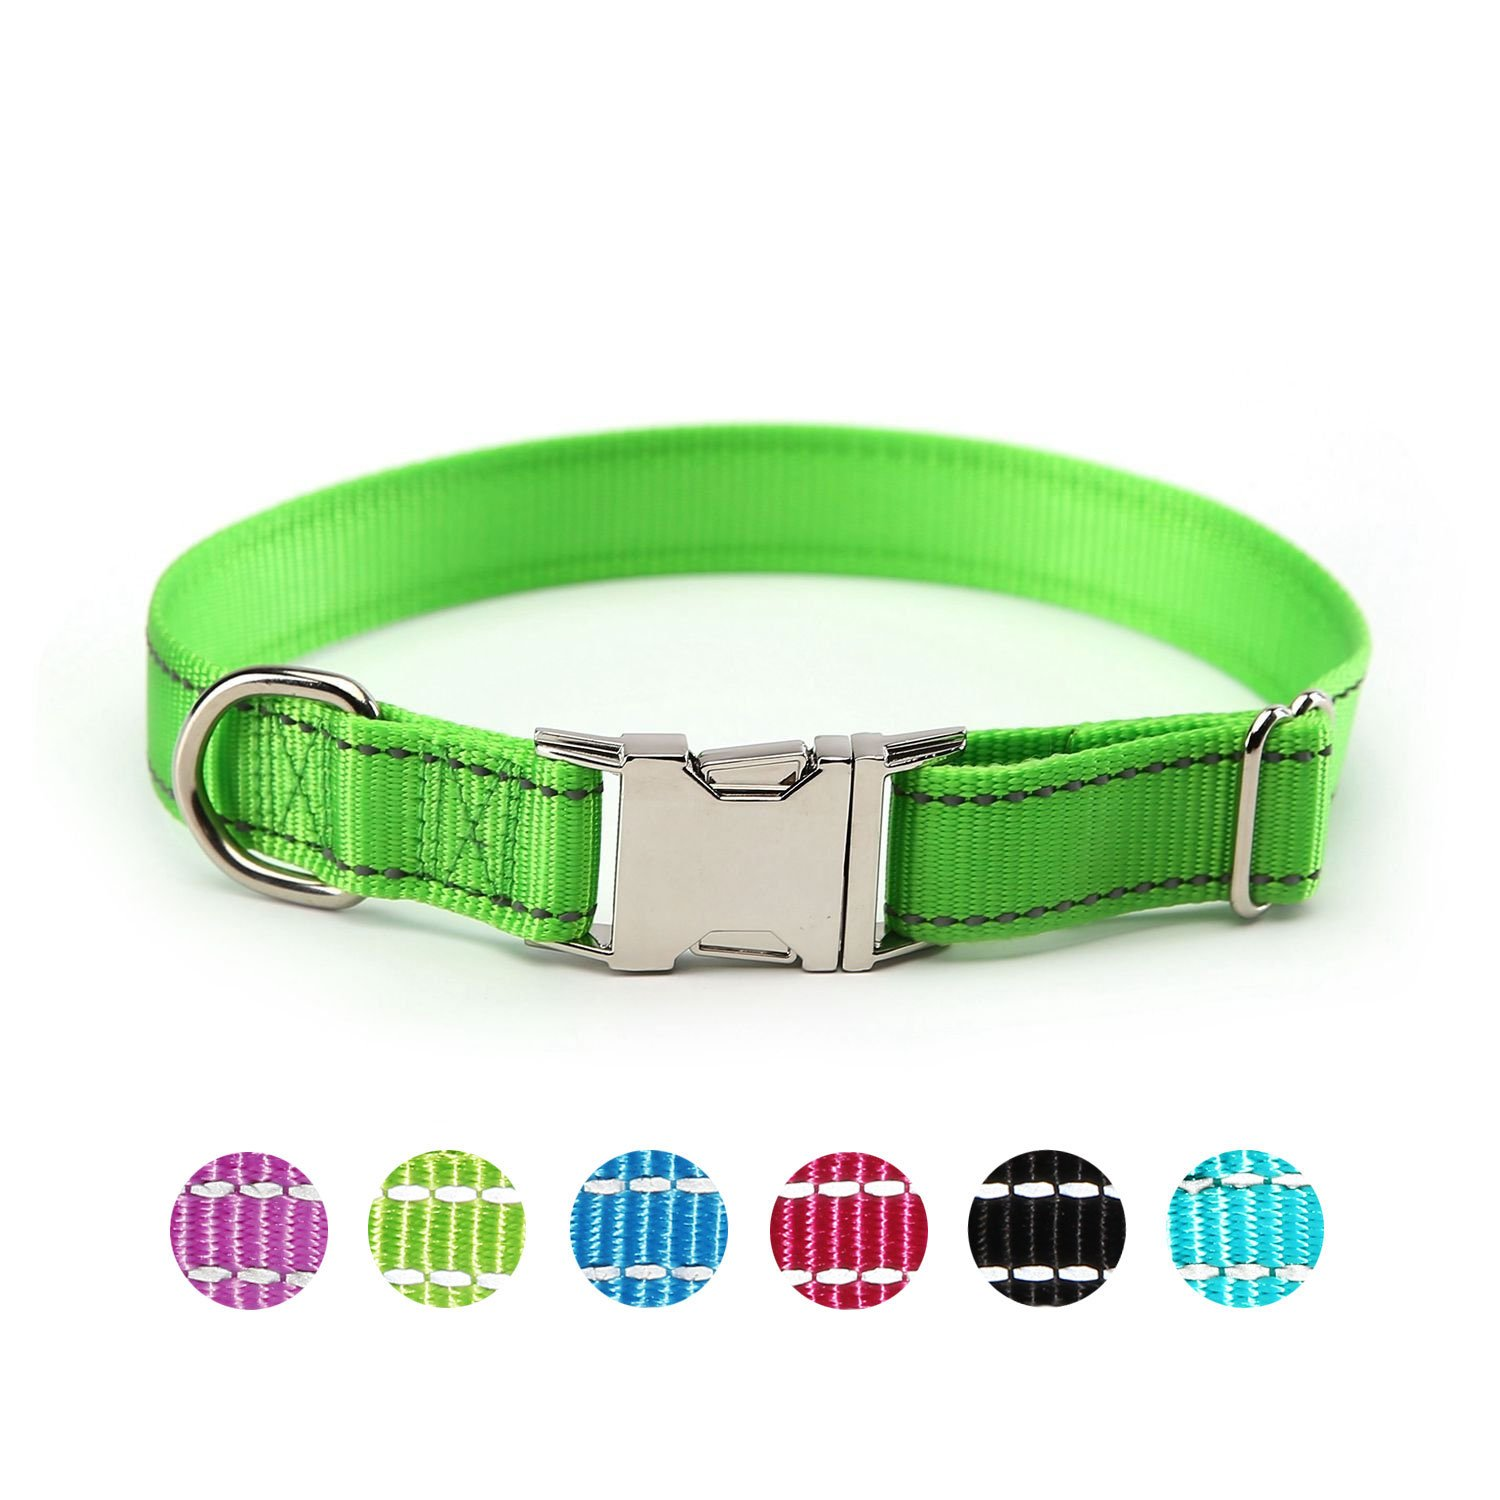 Lawngreen Large Lawngreen Large ComSaf Vivid Reflective Dog Collar with Metal Buckle for Large Dogs Lawngreen